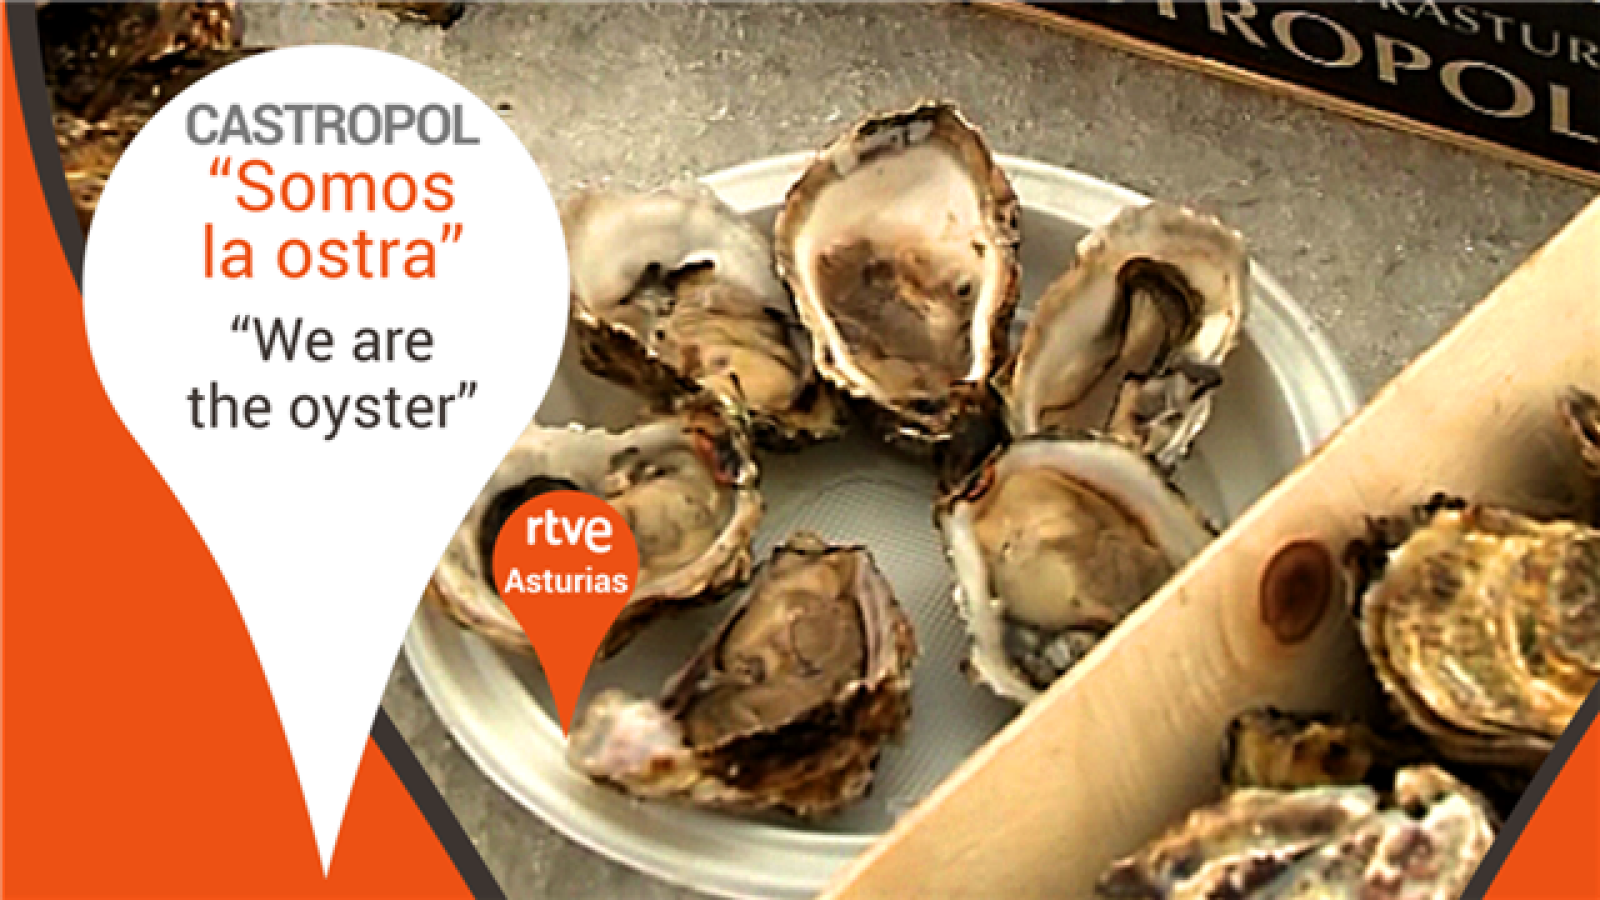 Somos la ostra - Castropol, Asturias - We are the oyster.